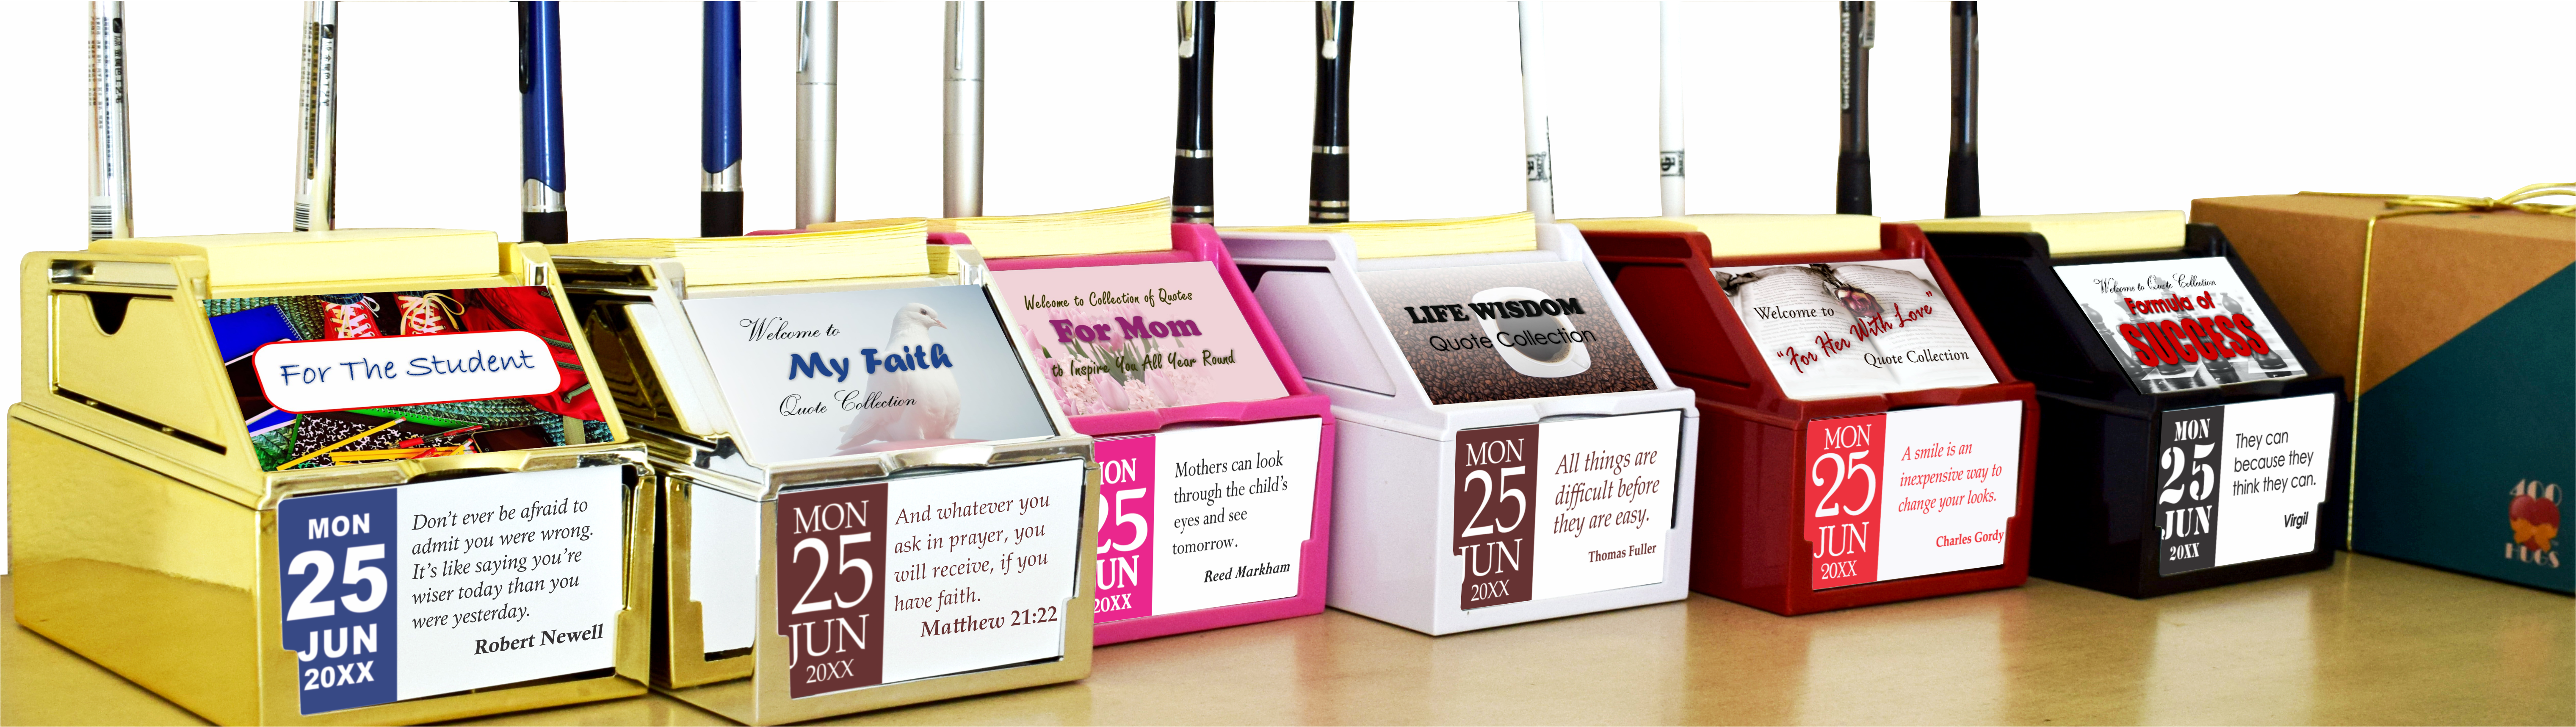 Inspirational Tabletop Organizers with refillable calendar